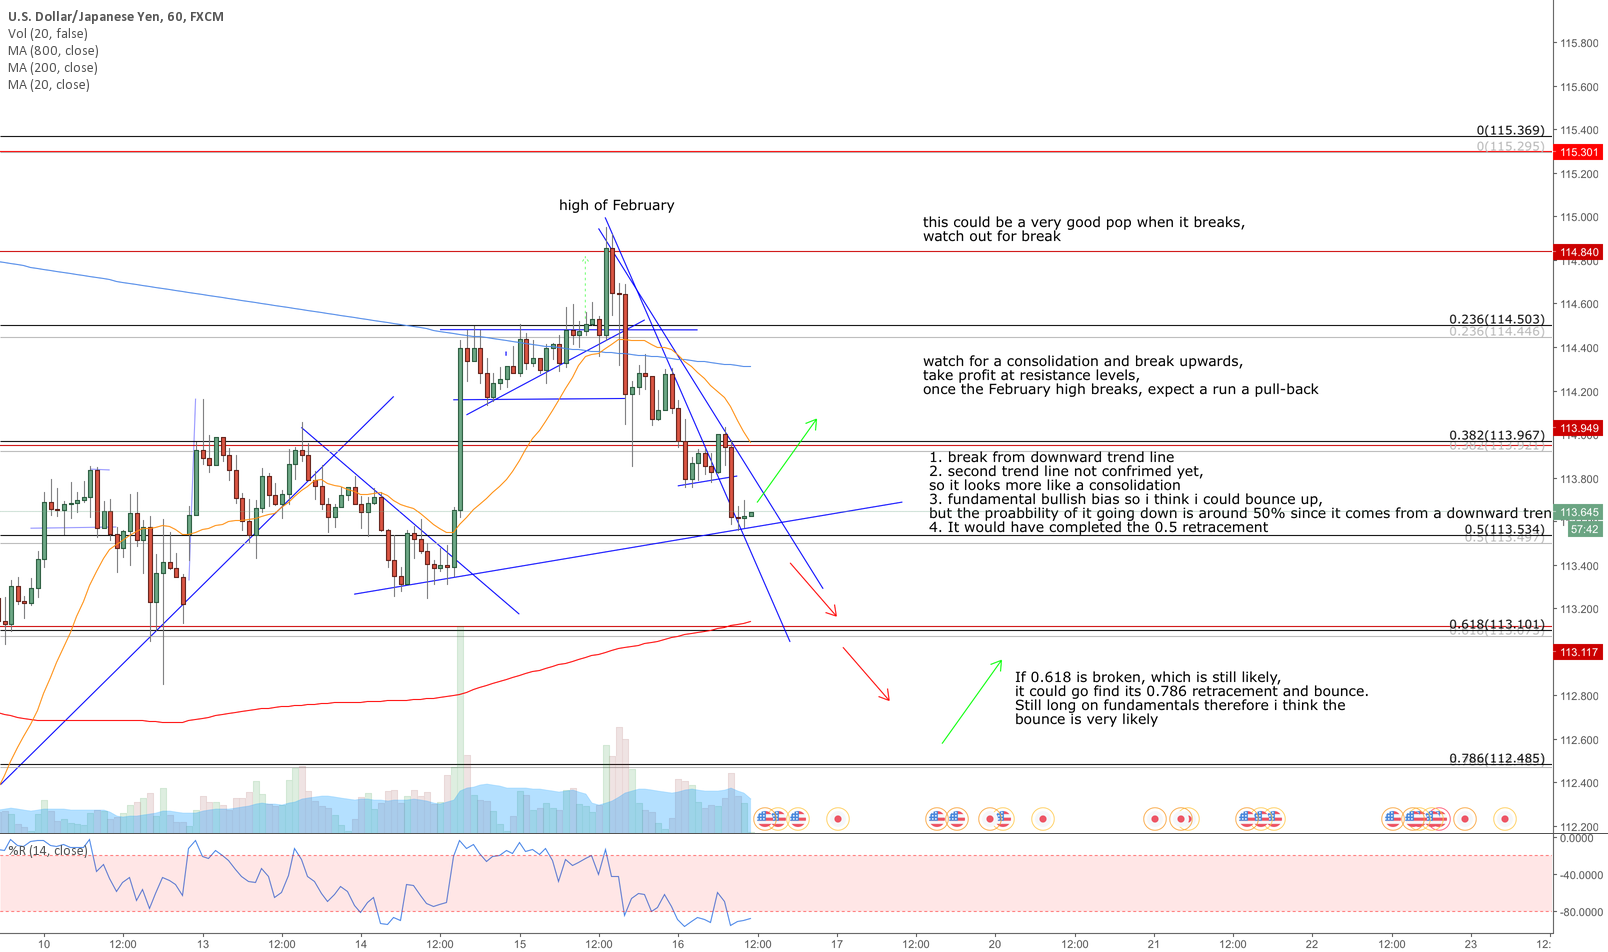 medium term long on USDJPY with probability of further reversal